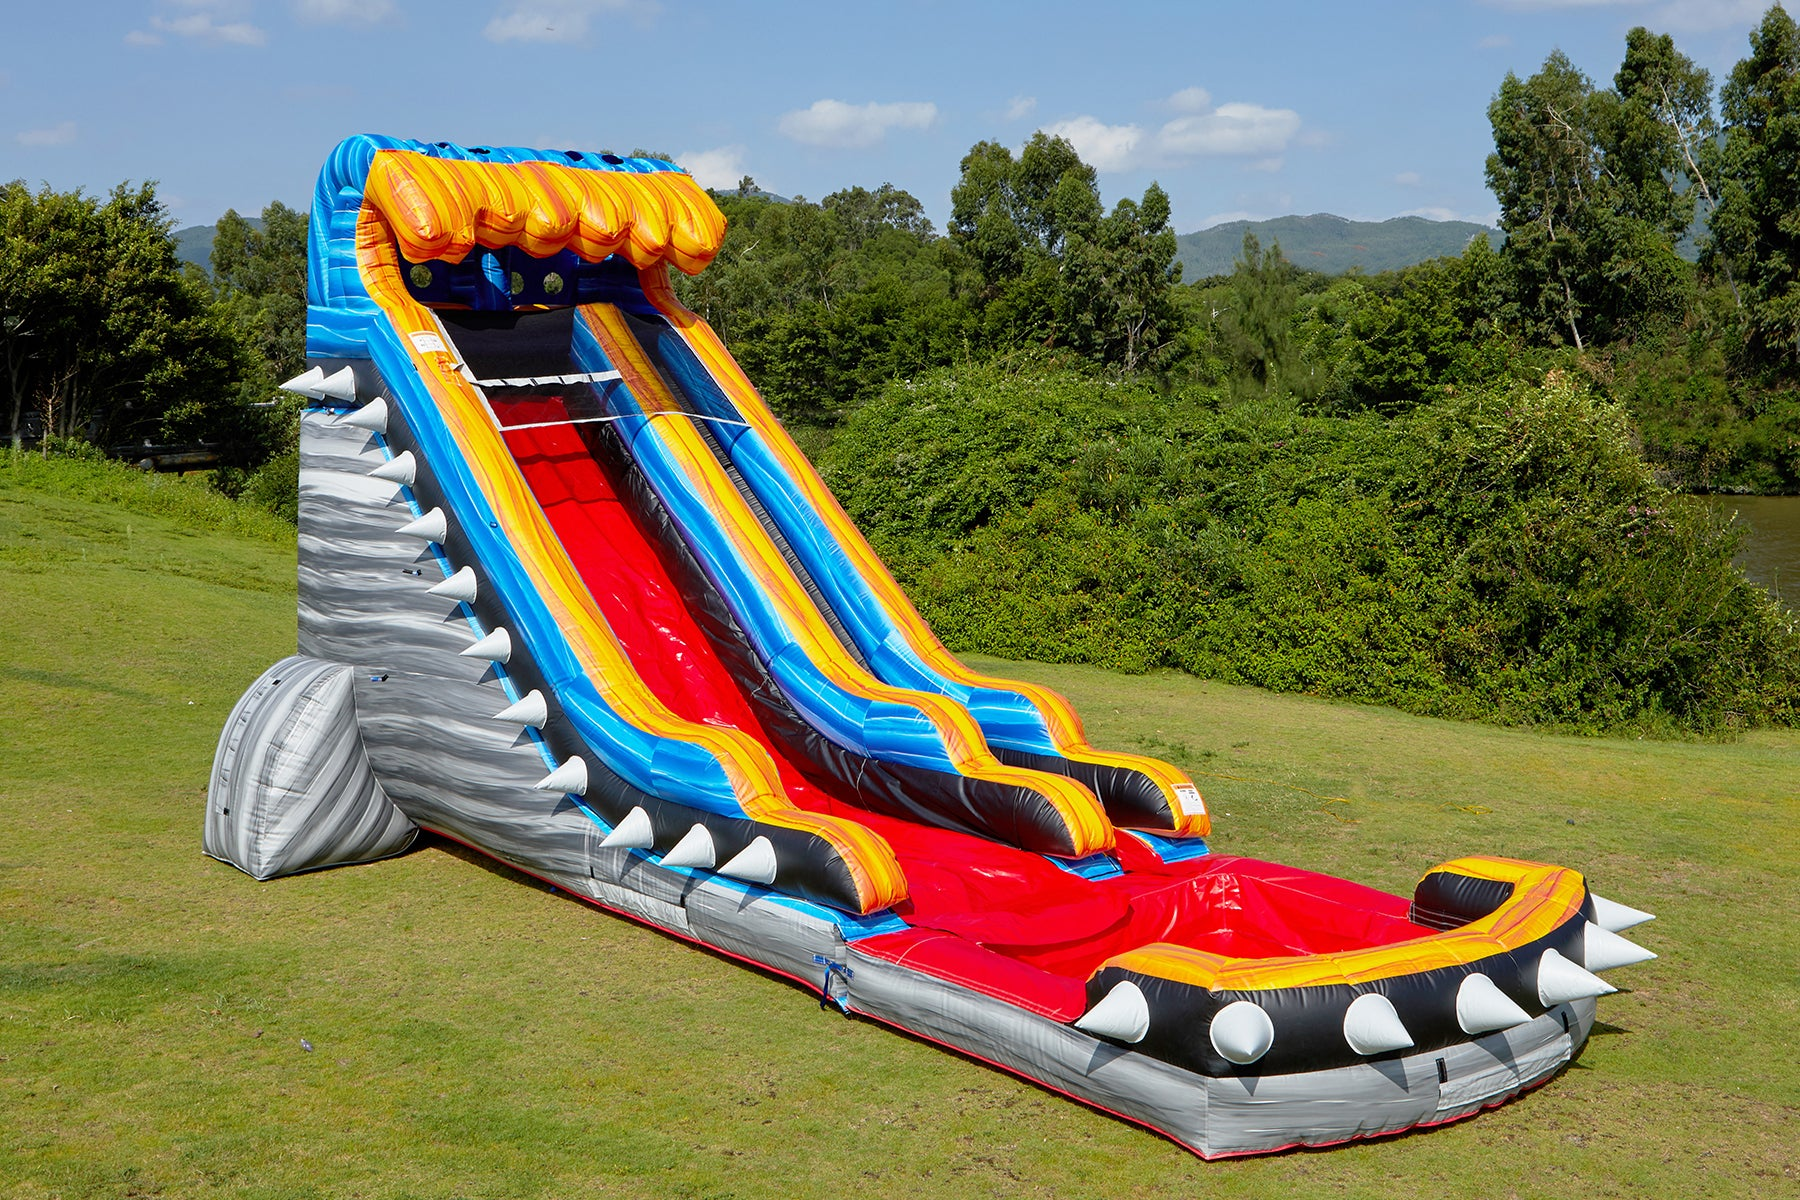 19 FT ROCKER SLIDE